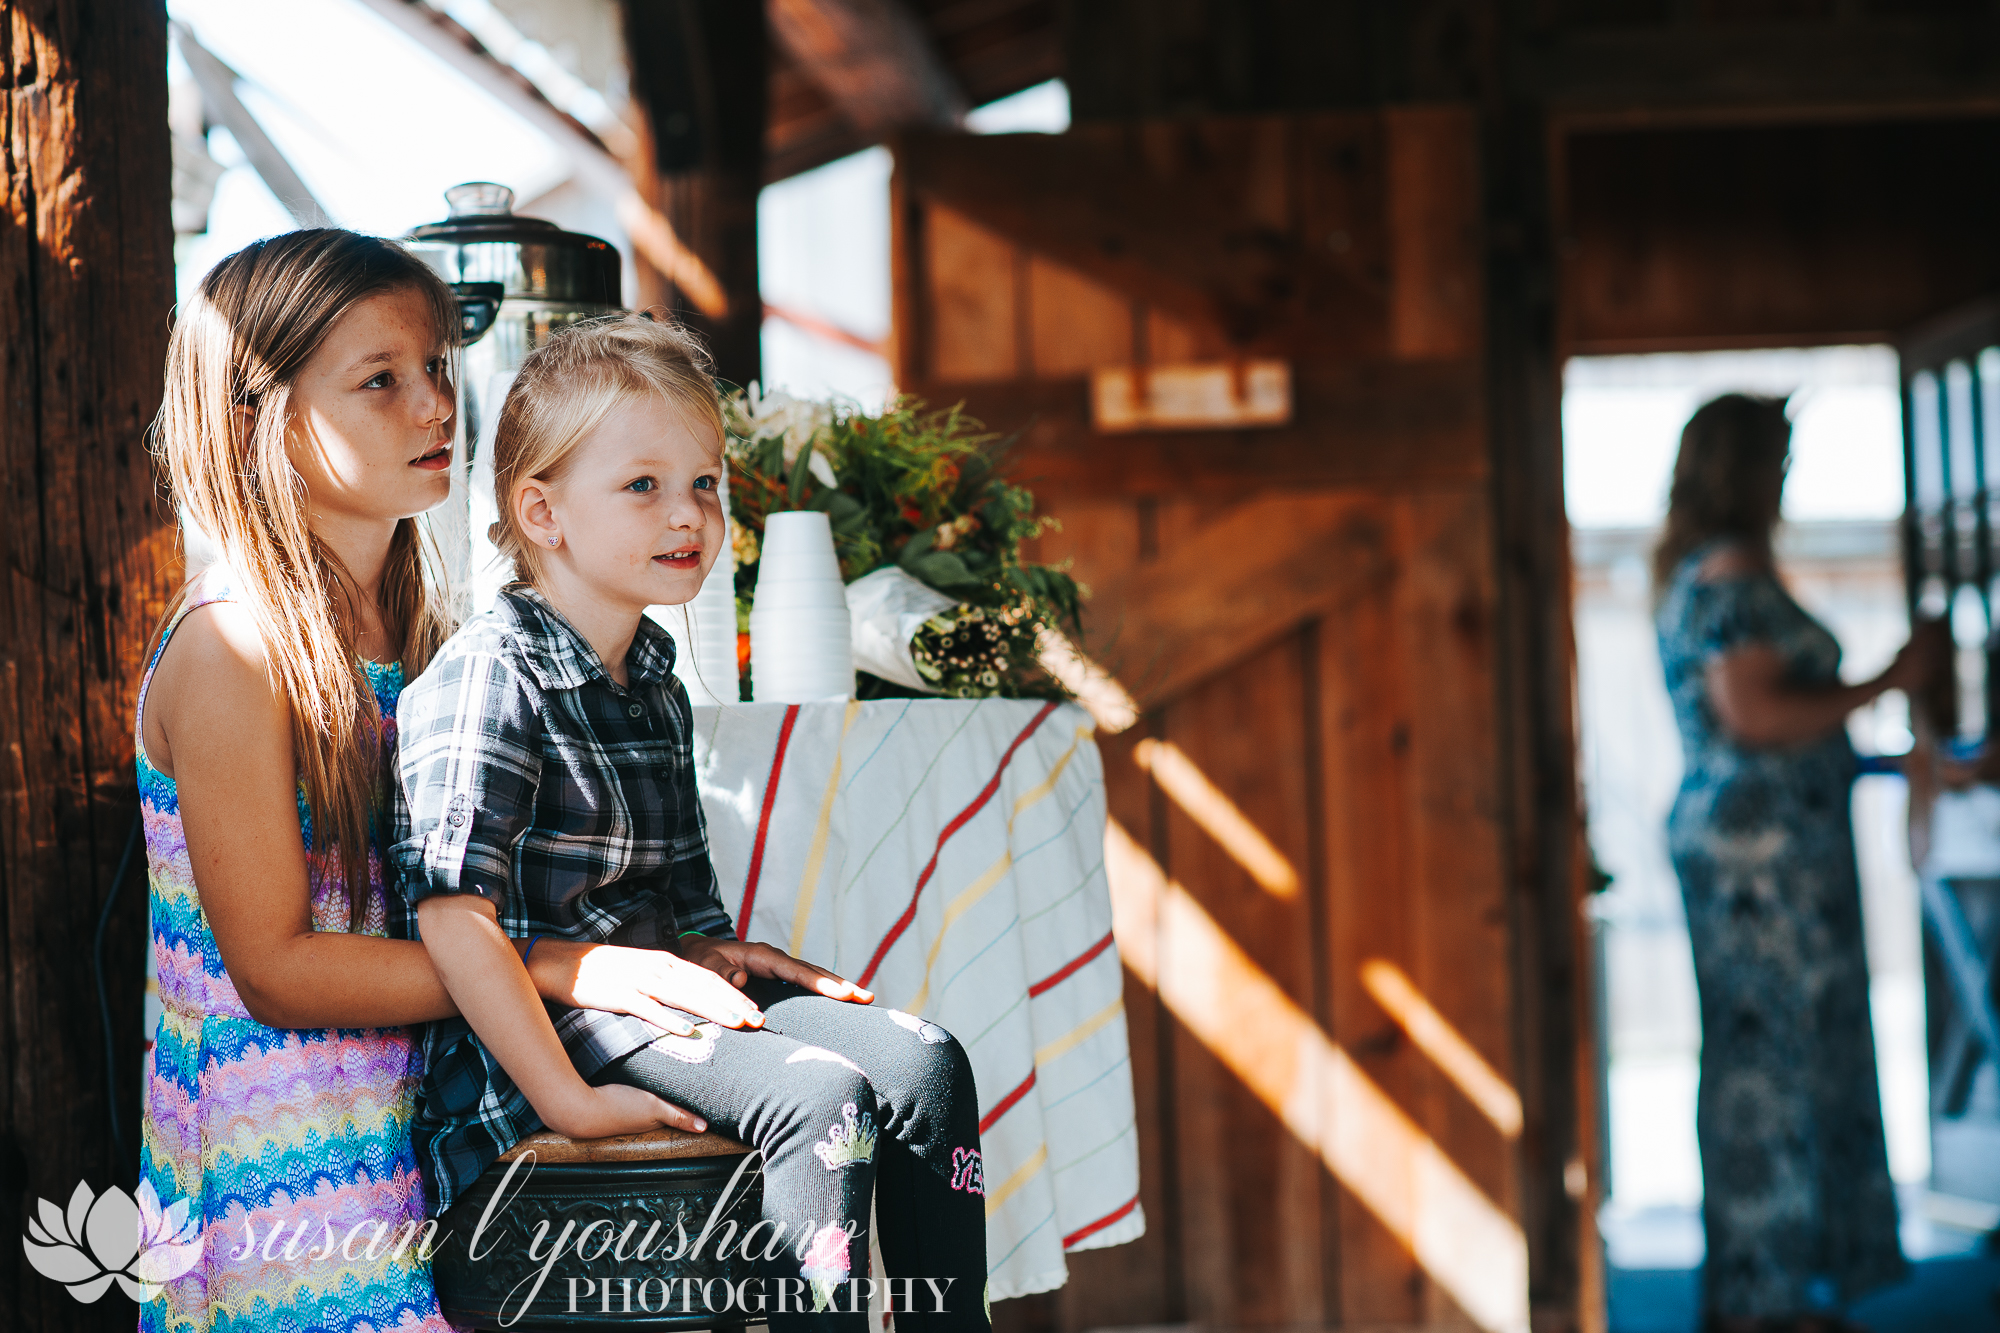 BLOG Kelly and DJ Roberts 08-25-2018 SLY Photography LLC-126.jpg